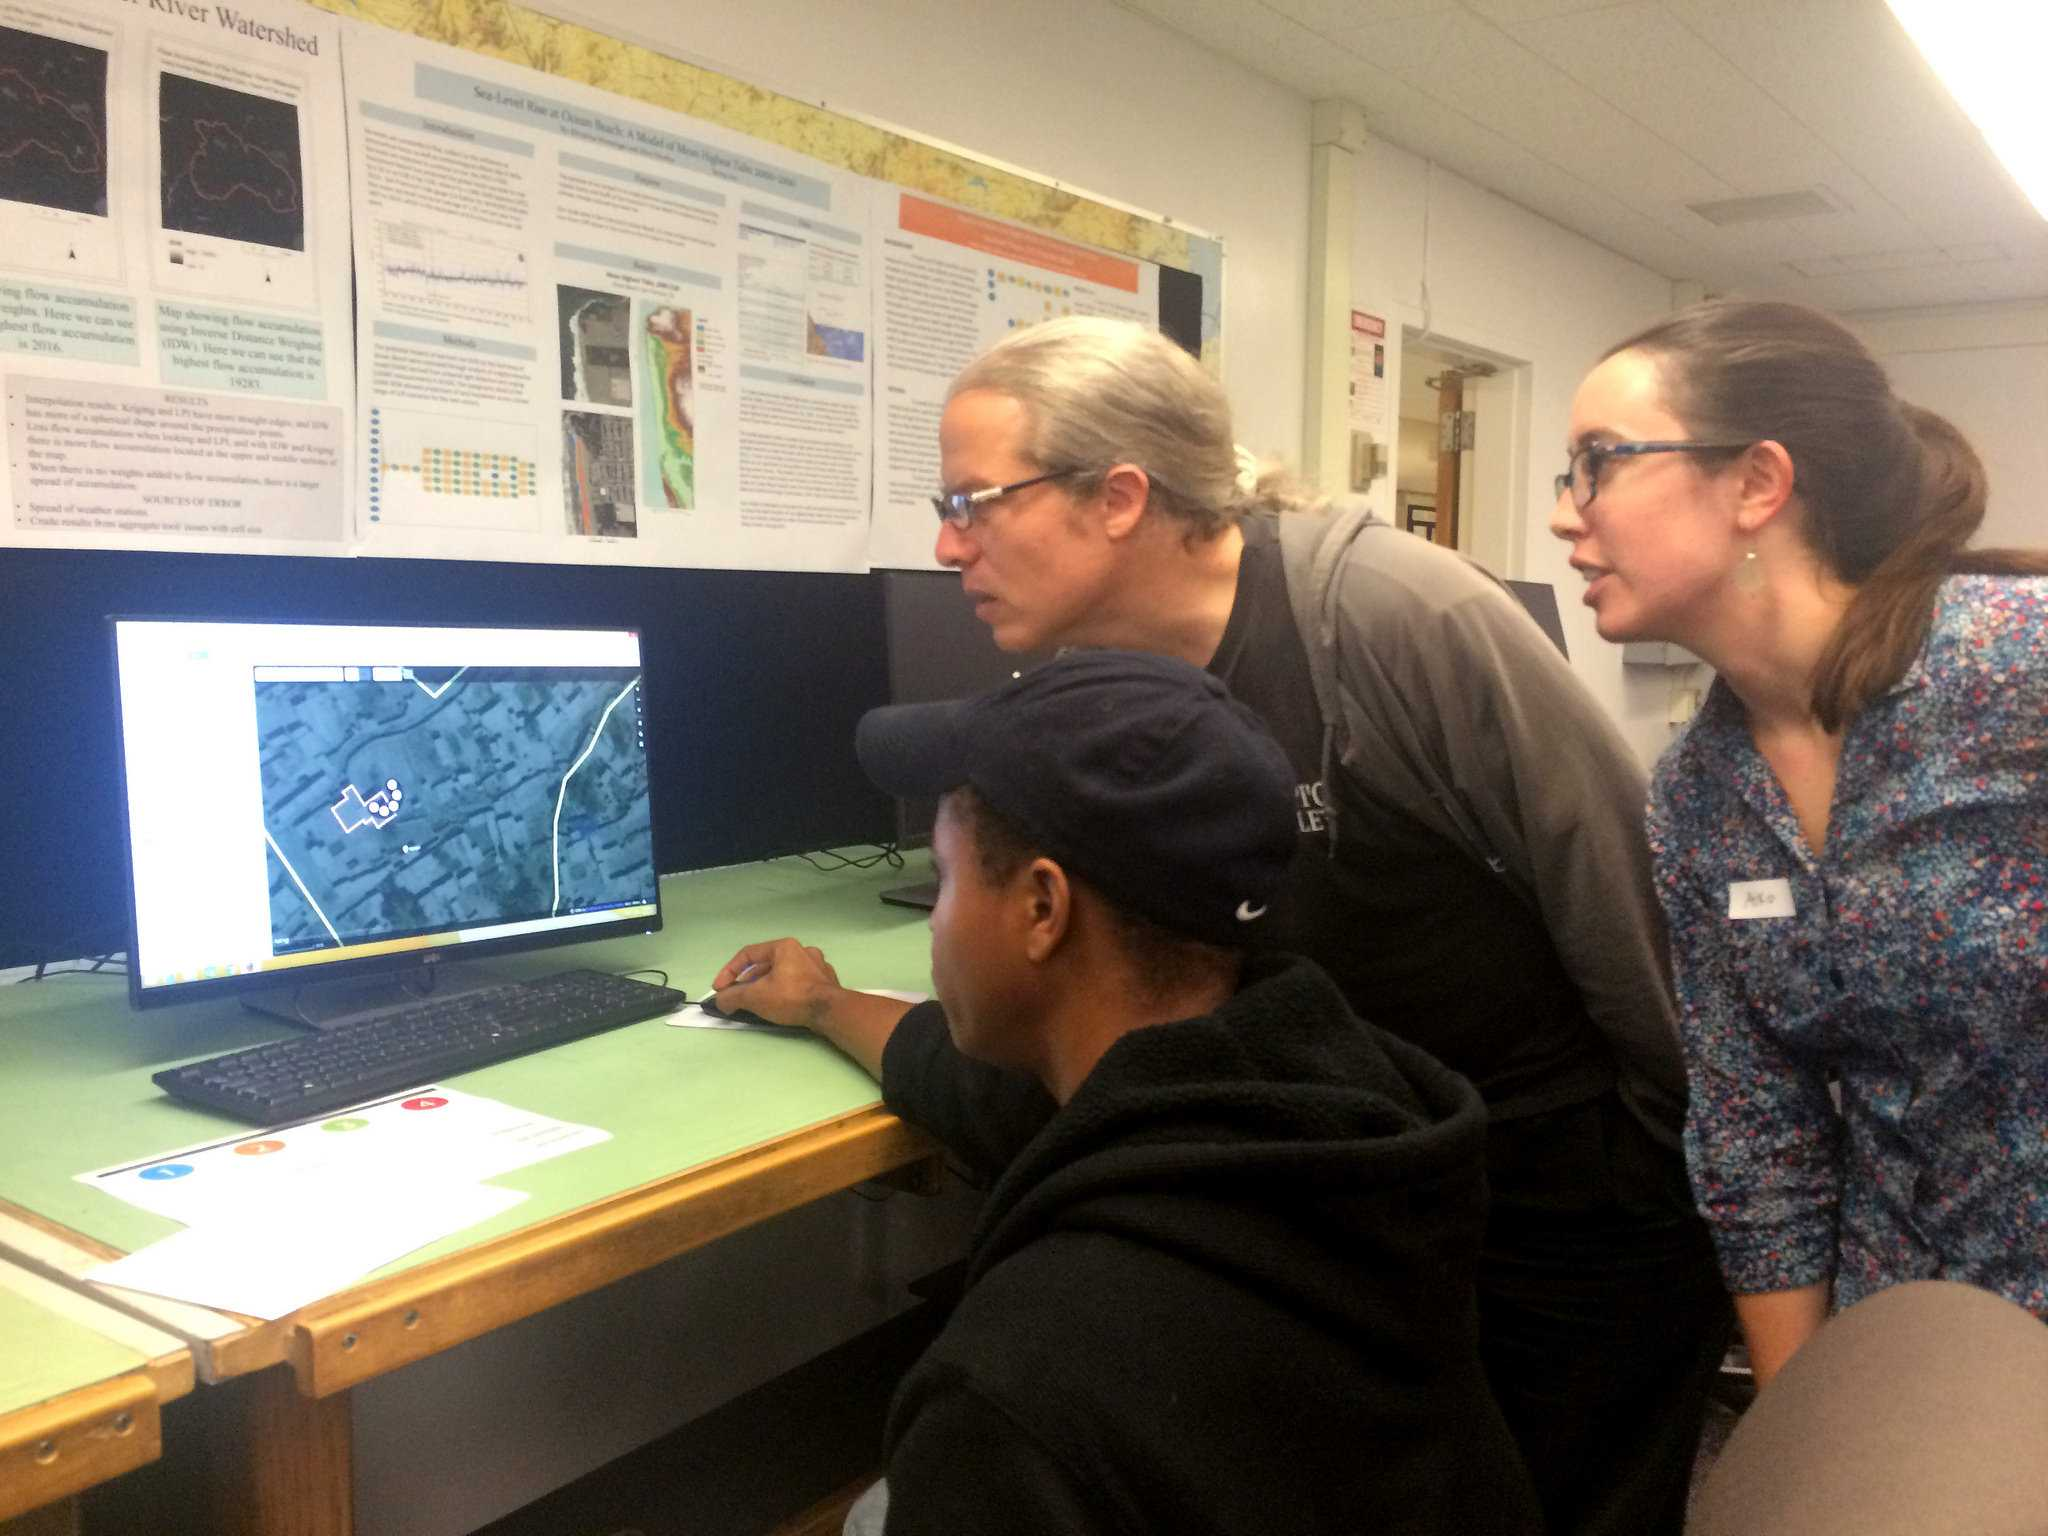 (right to left) Rah Smith, urban studies and planning major, Ben Discoe, mapping instructor, and Aiko Weverk, IGIS associate director explore different applications of crowd-mapping at the Institute for Geographic Information Science's first marathon at SF State Wednesday Nov. 18, 2015. (Brian Grabianowski / Xpress)